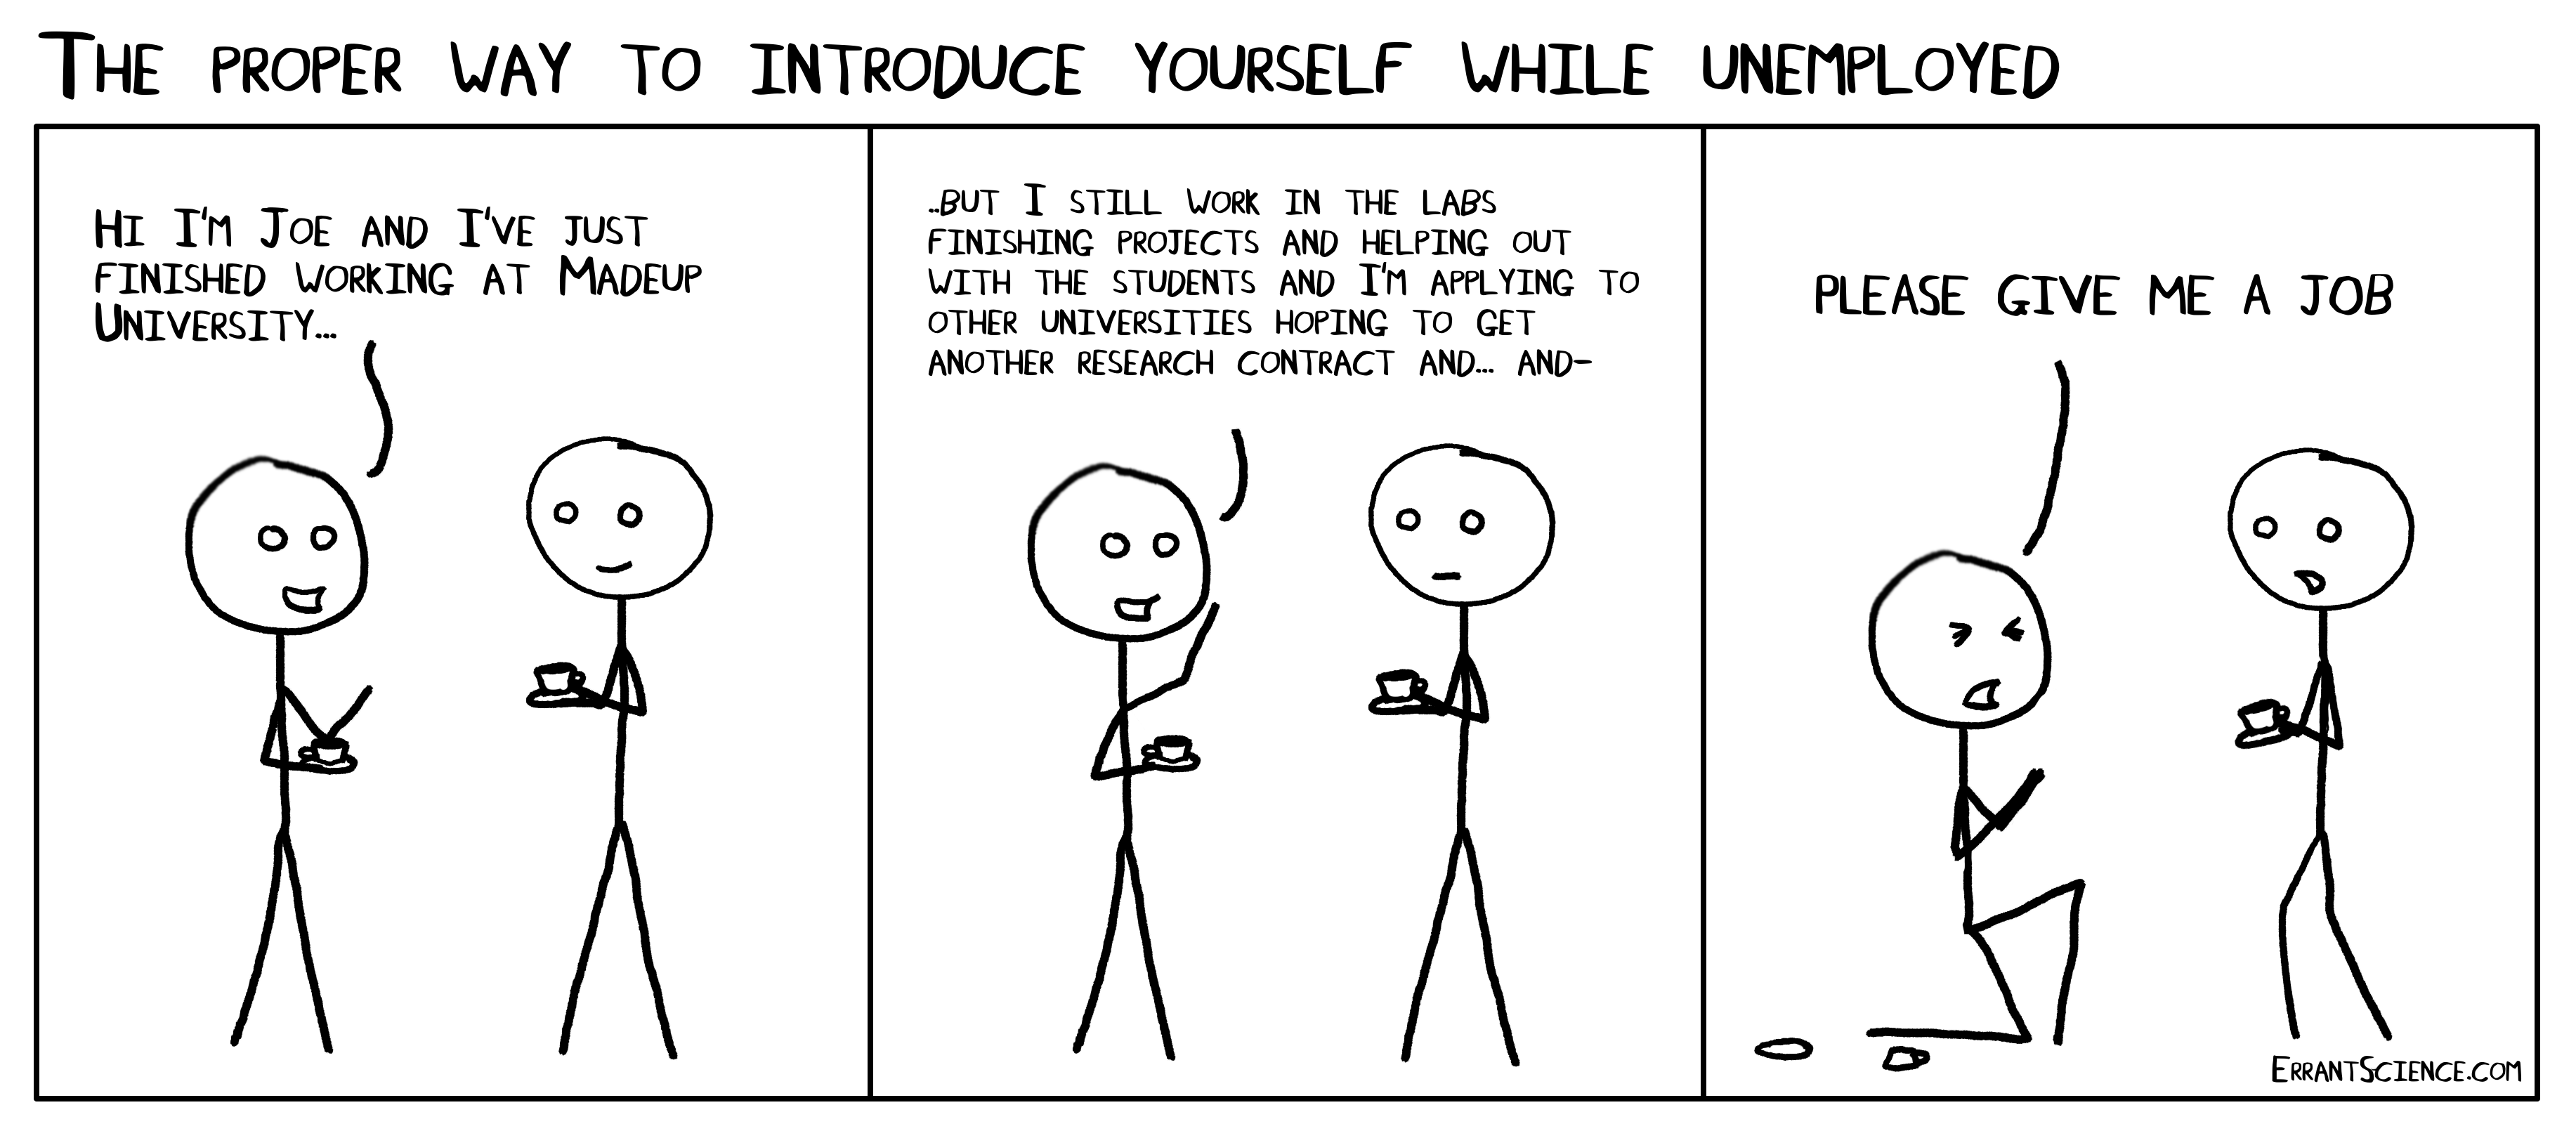 How To Introduce Yourself As An Unemployed Researcher